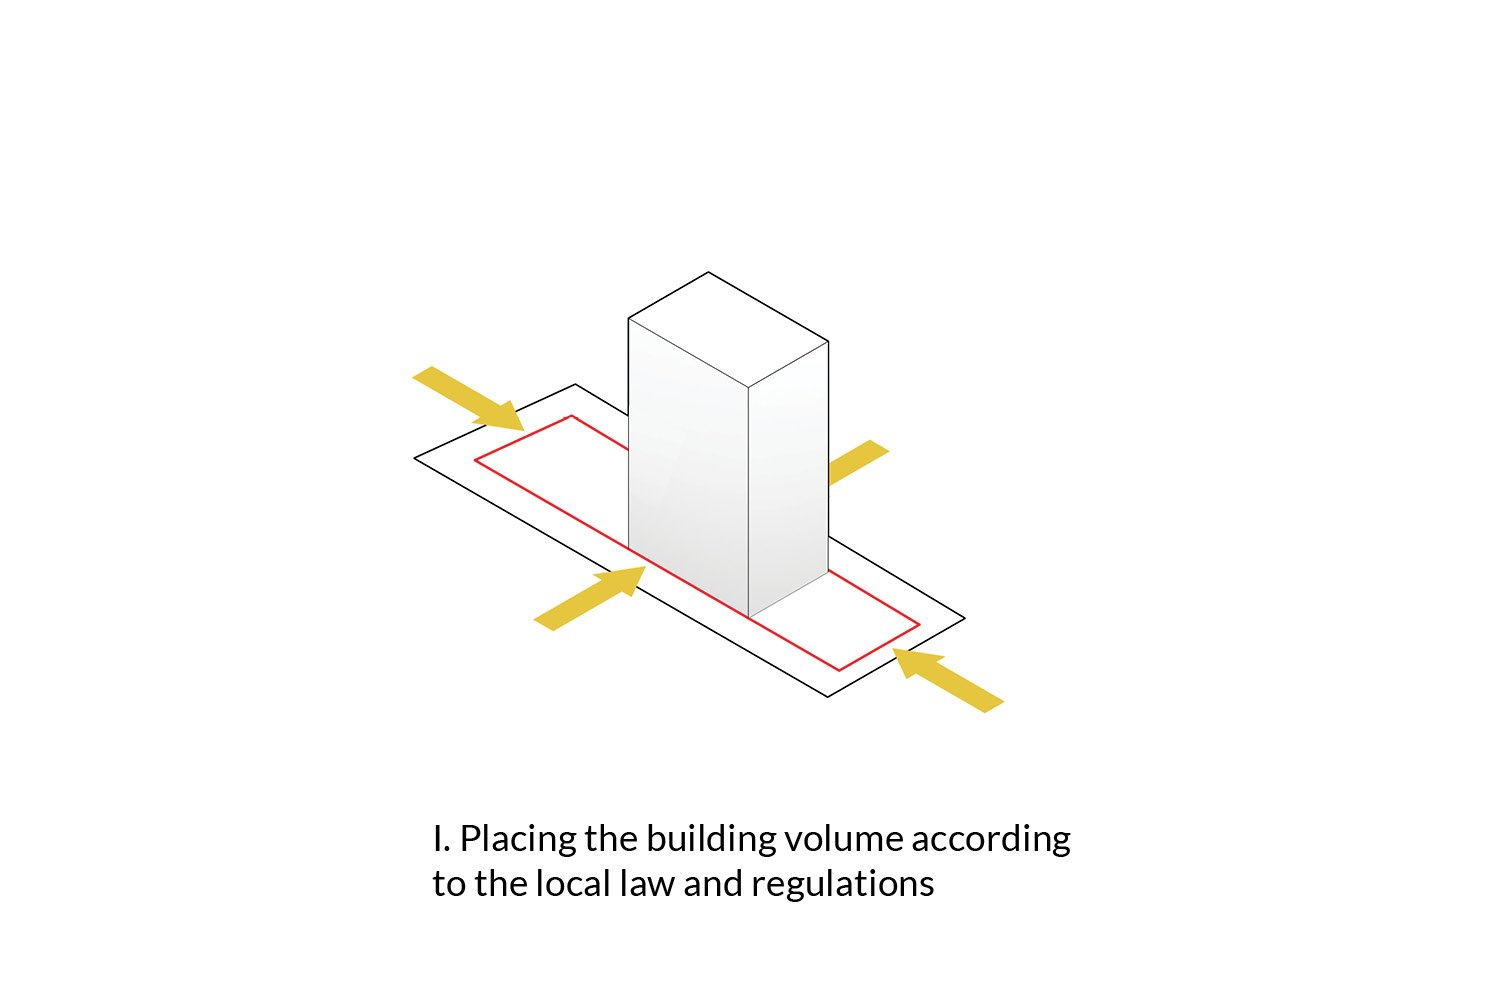 Placing the building according to the regulations AVA